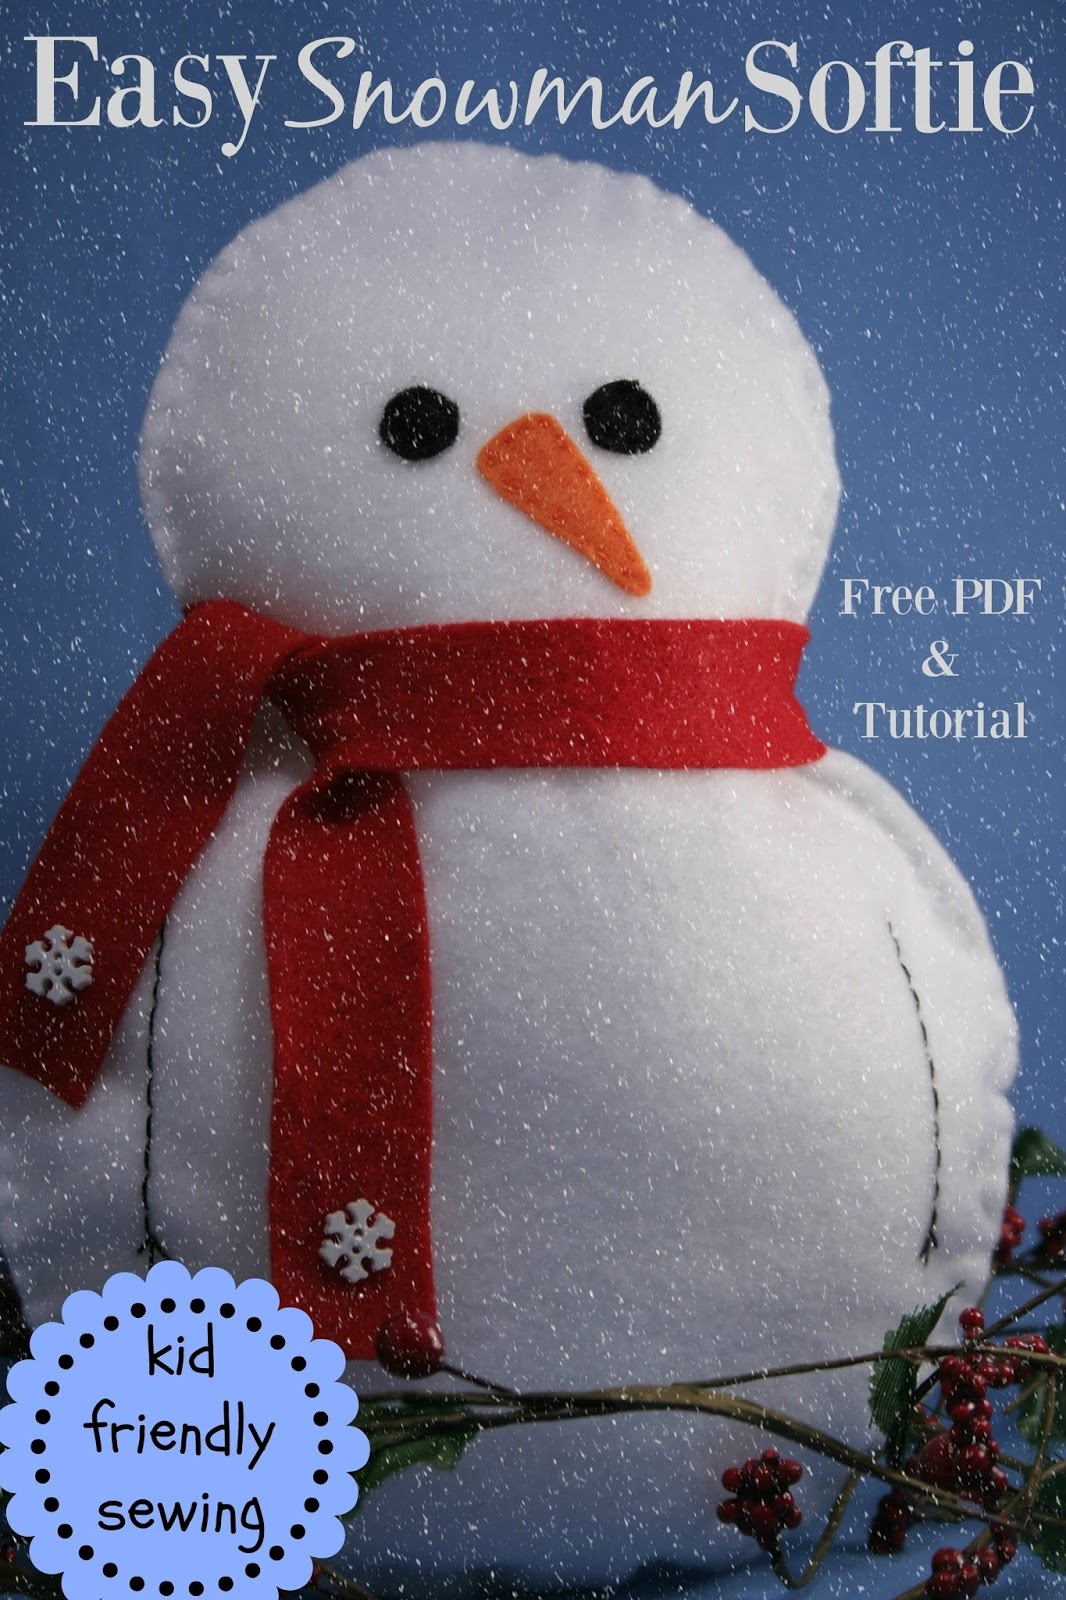 Easy Snowman Snack: Sewing With Kids: How To Sew An Easy, Felt Snowman Softie